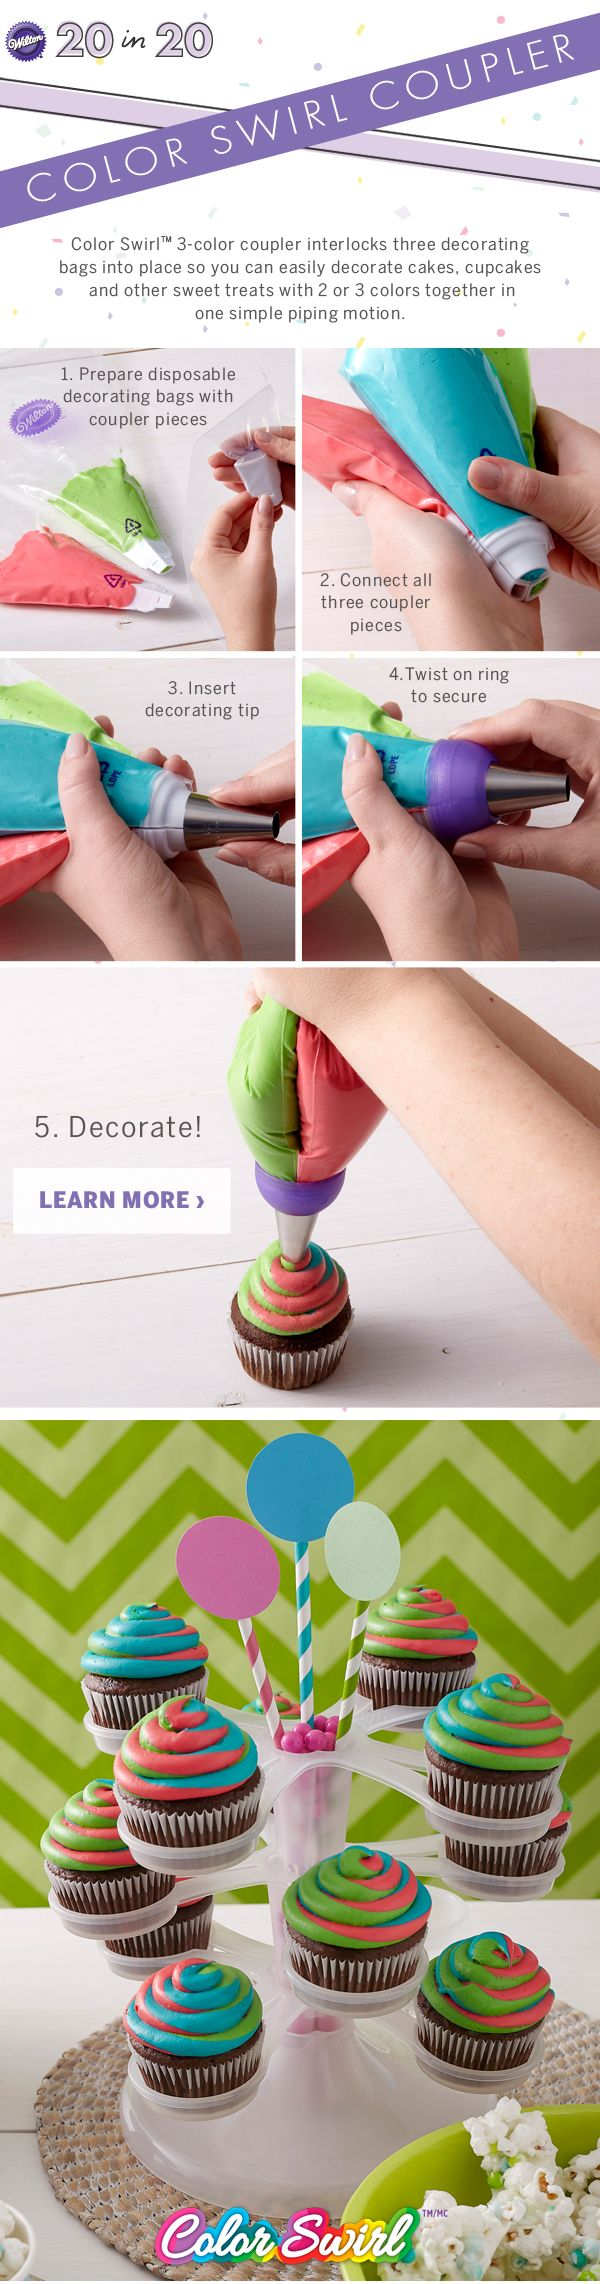 The Color Swirl Coupler interlocks 3 decorating bags so you can easily decorate treats with 2-3 colors in